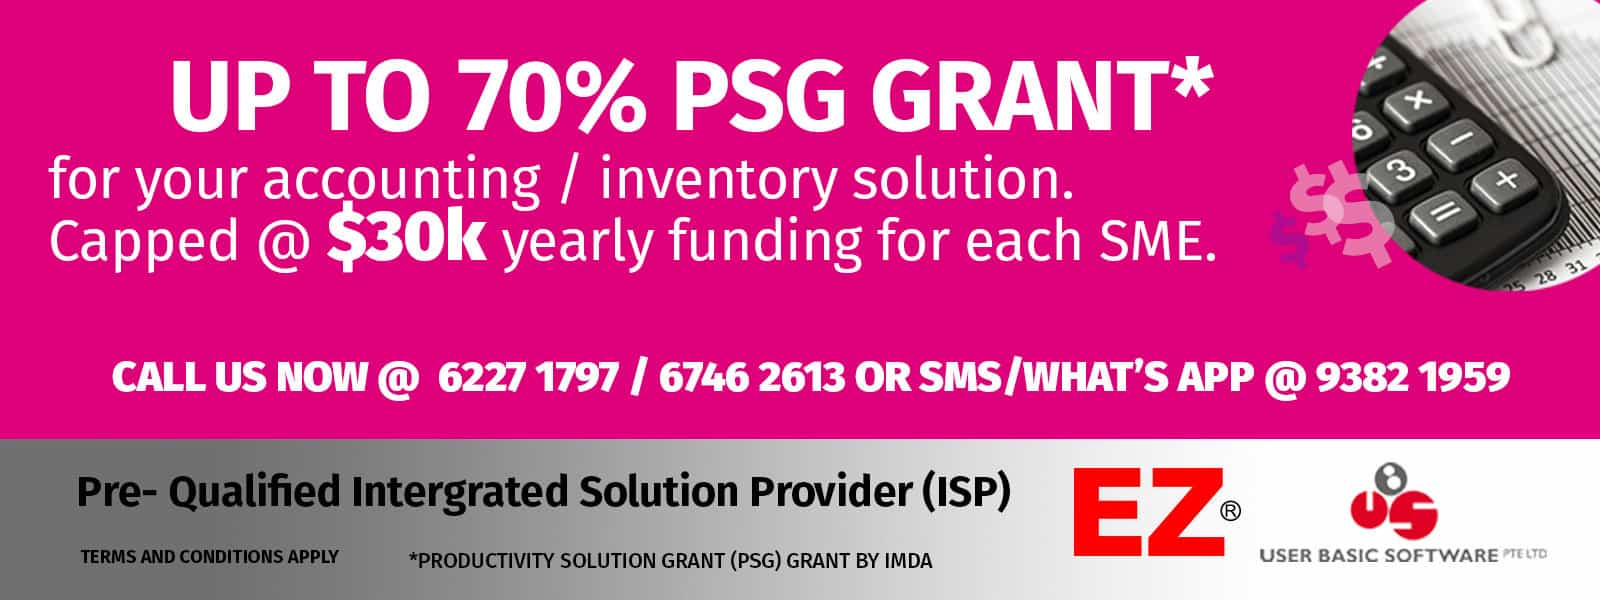 psg grant software singapore